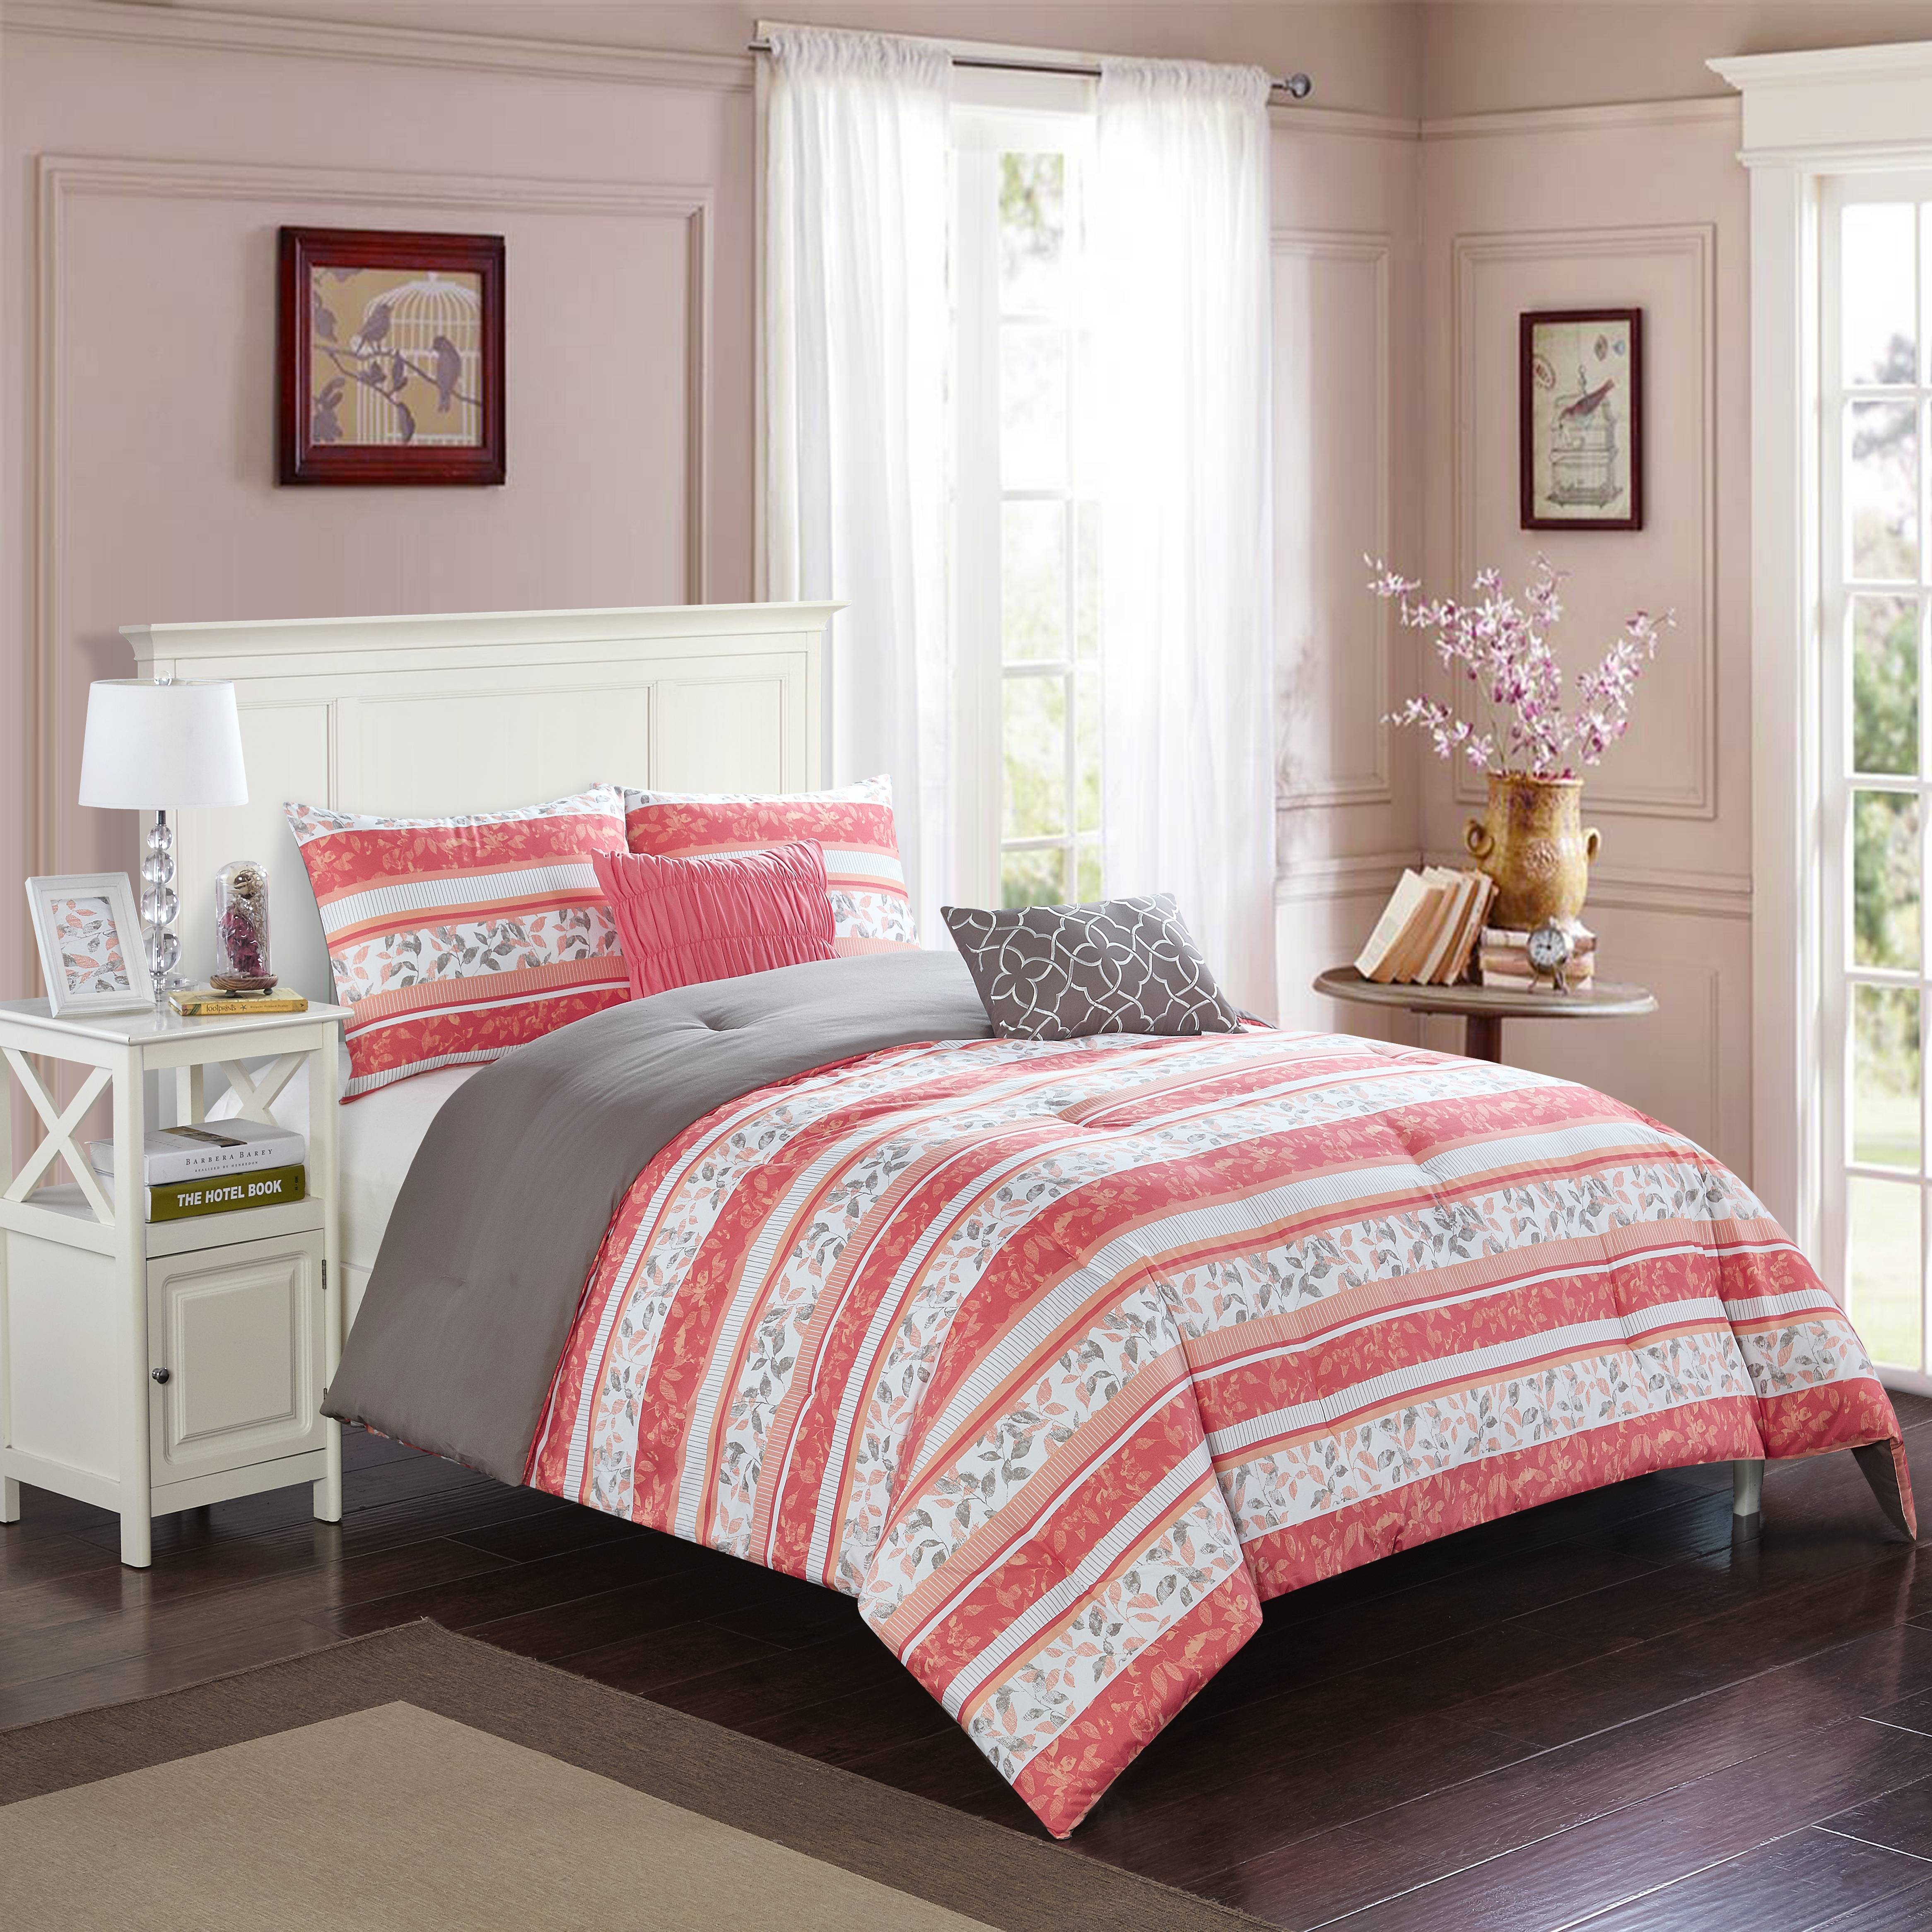 Better Homes and Garden Botanical Stripe 5-Piece Bedding Comforter Set